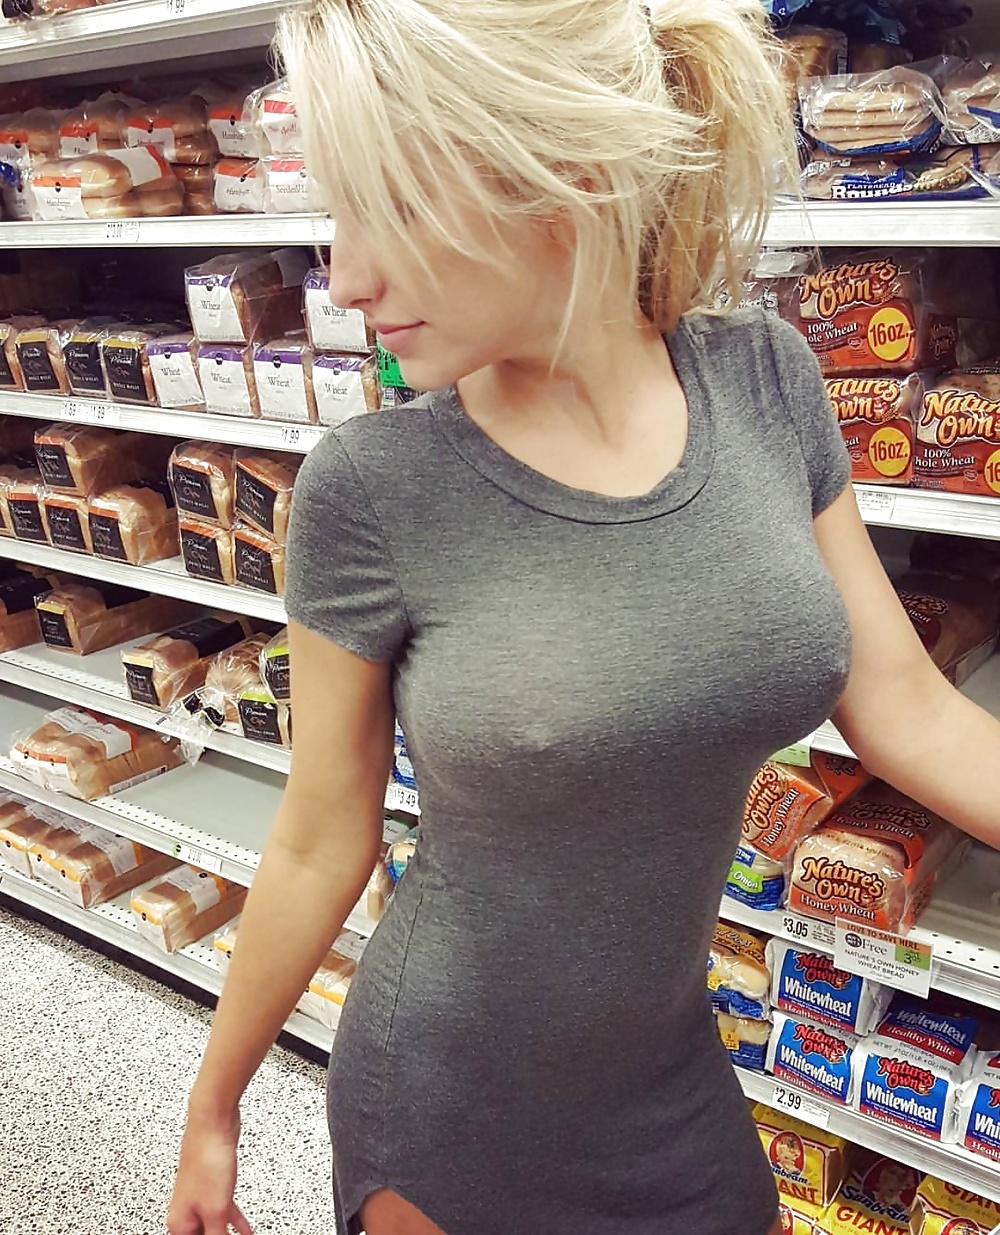 showing images for great dane knot xxx Amateur, Boobs, Breasts, Cutegirl, Flashing, Hot, Nicerack, Nicetits, Nipples, Sexy, Surprise, Teen, Tits, Titties